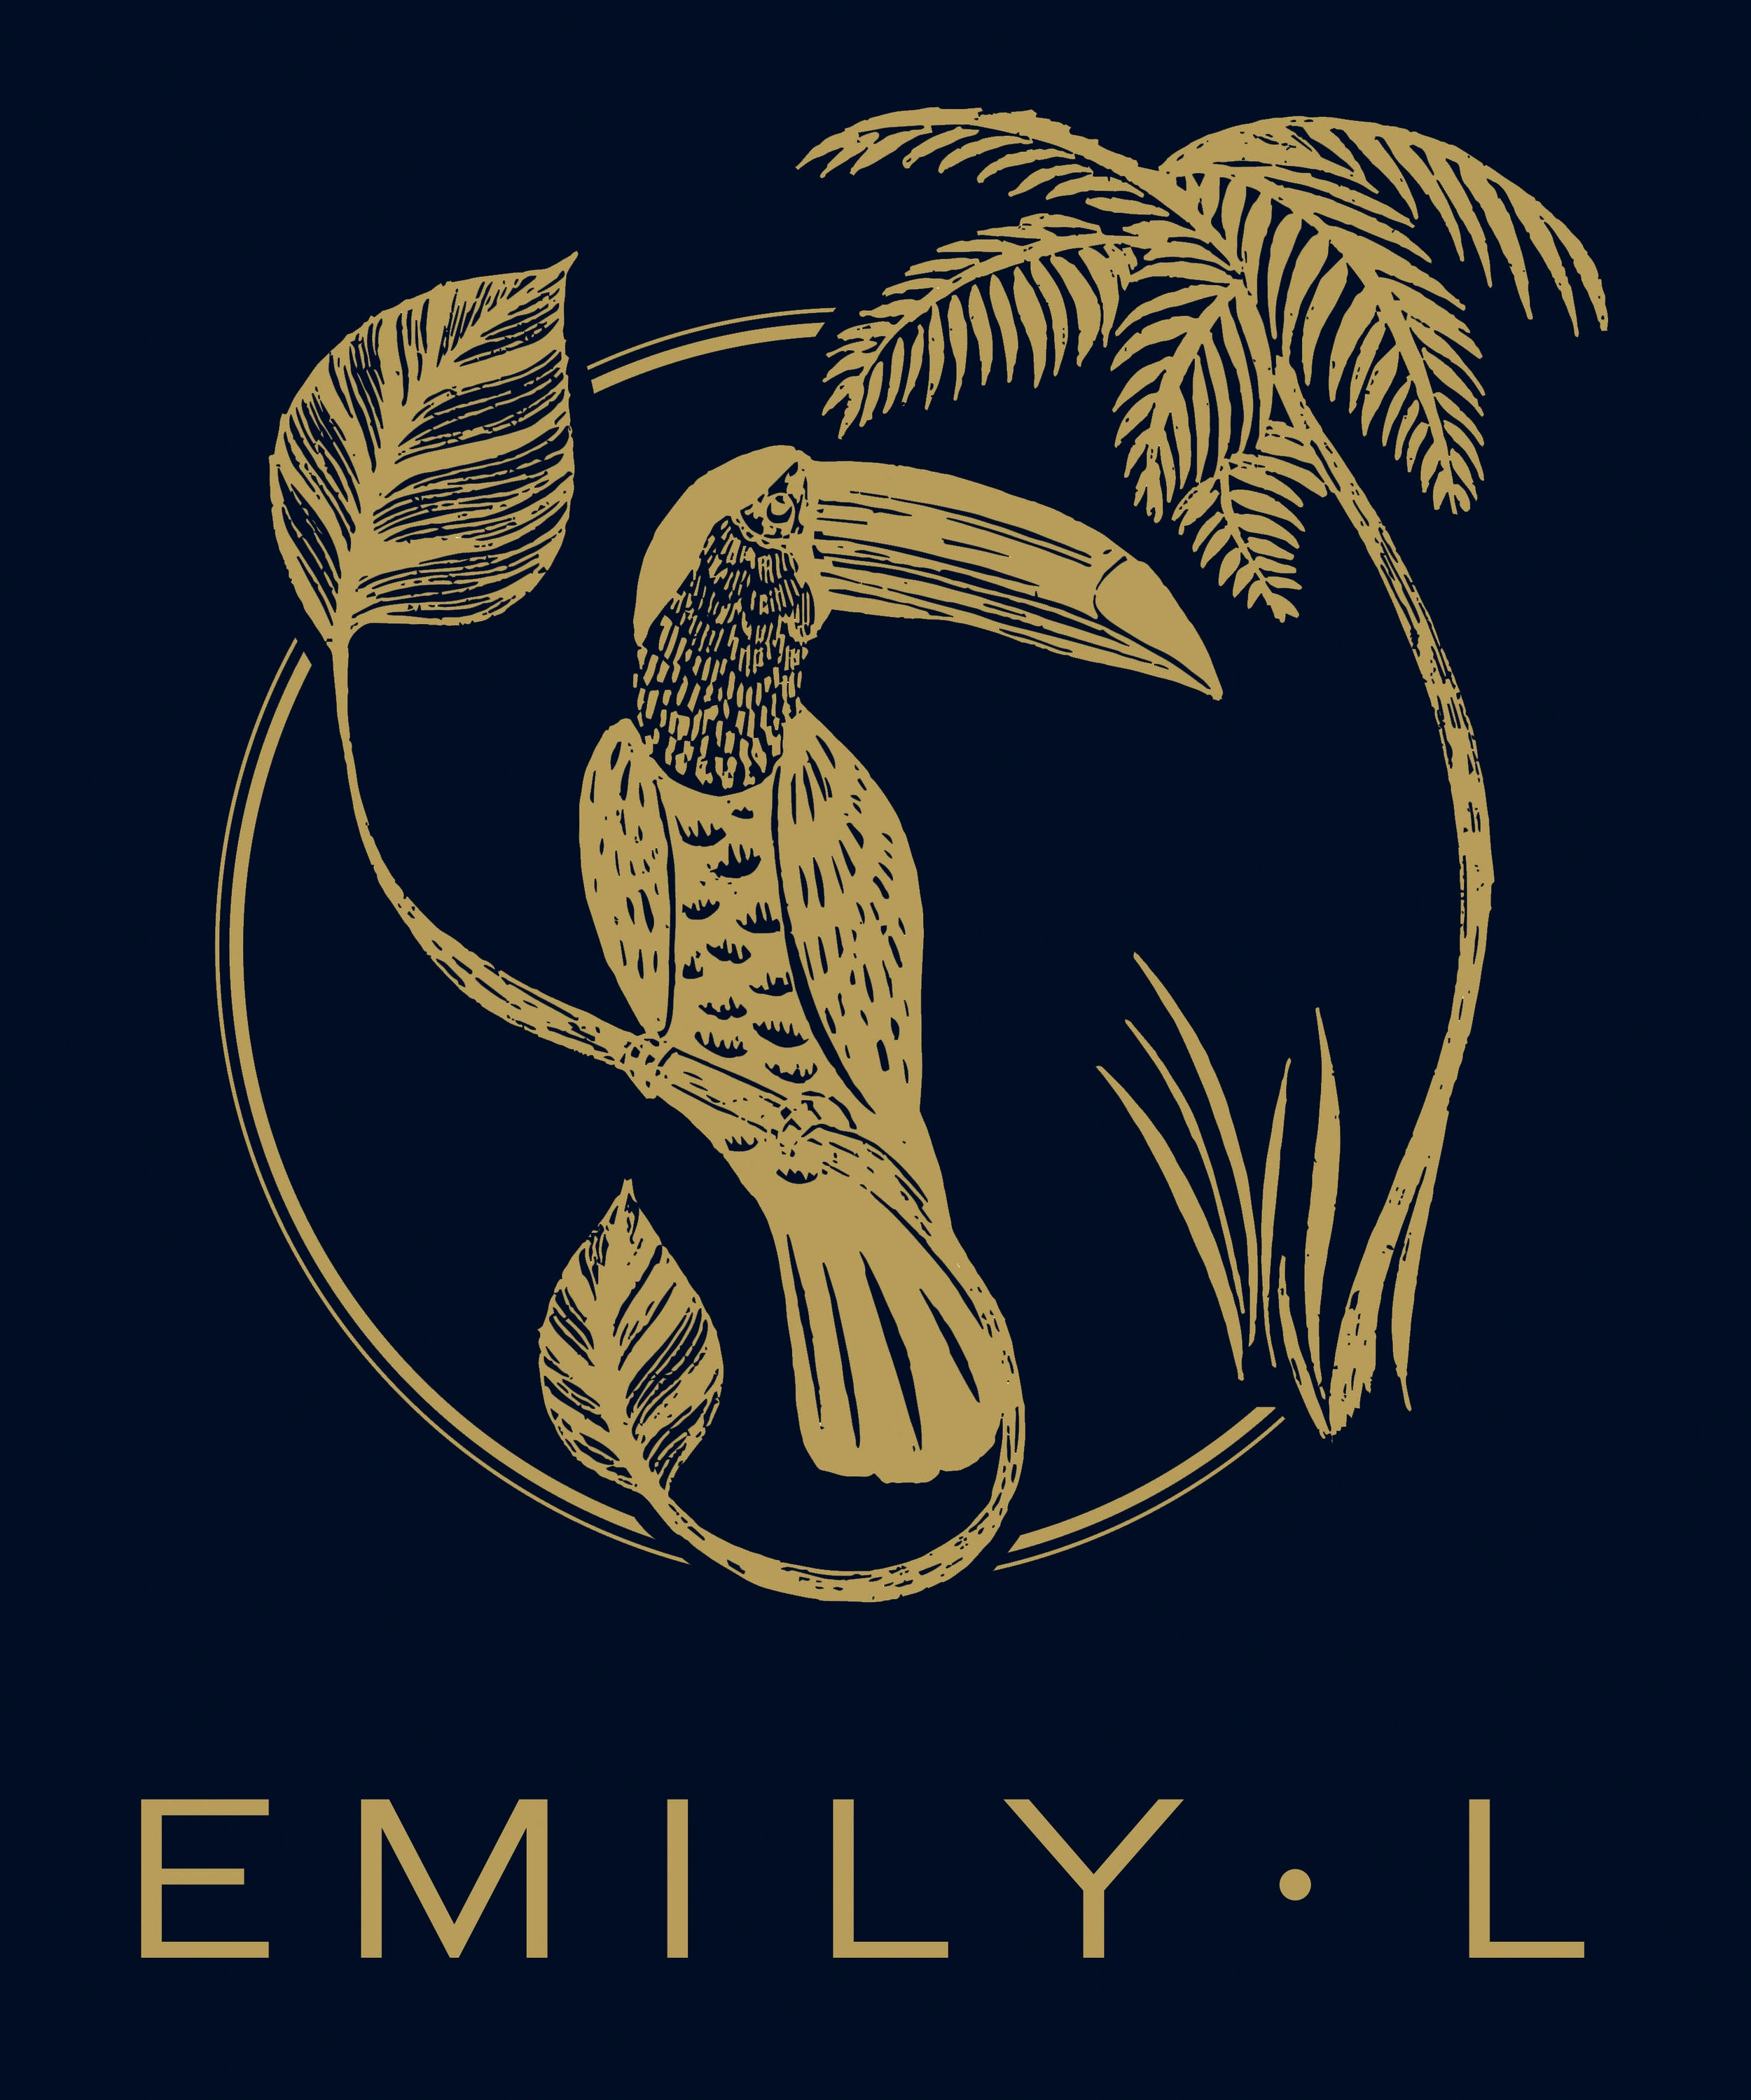 Website Under devolpment - For all enquiries contactemily@emilyl.co.uk